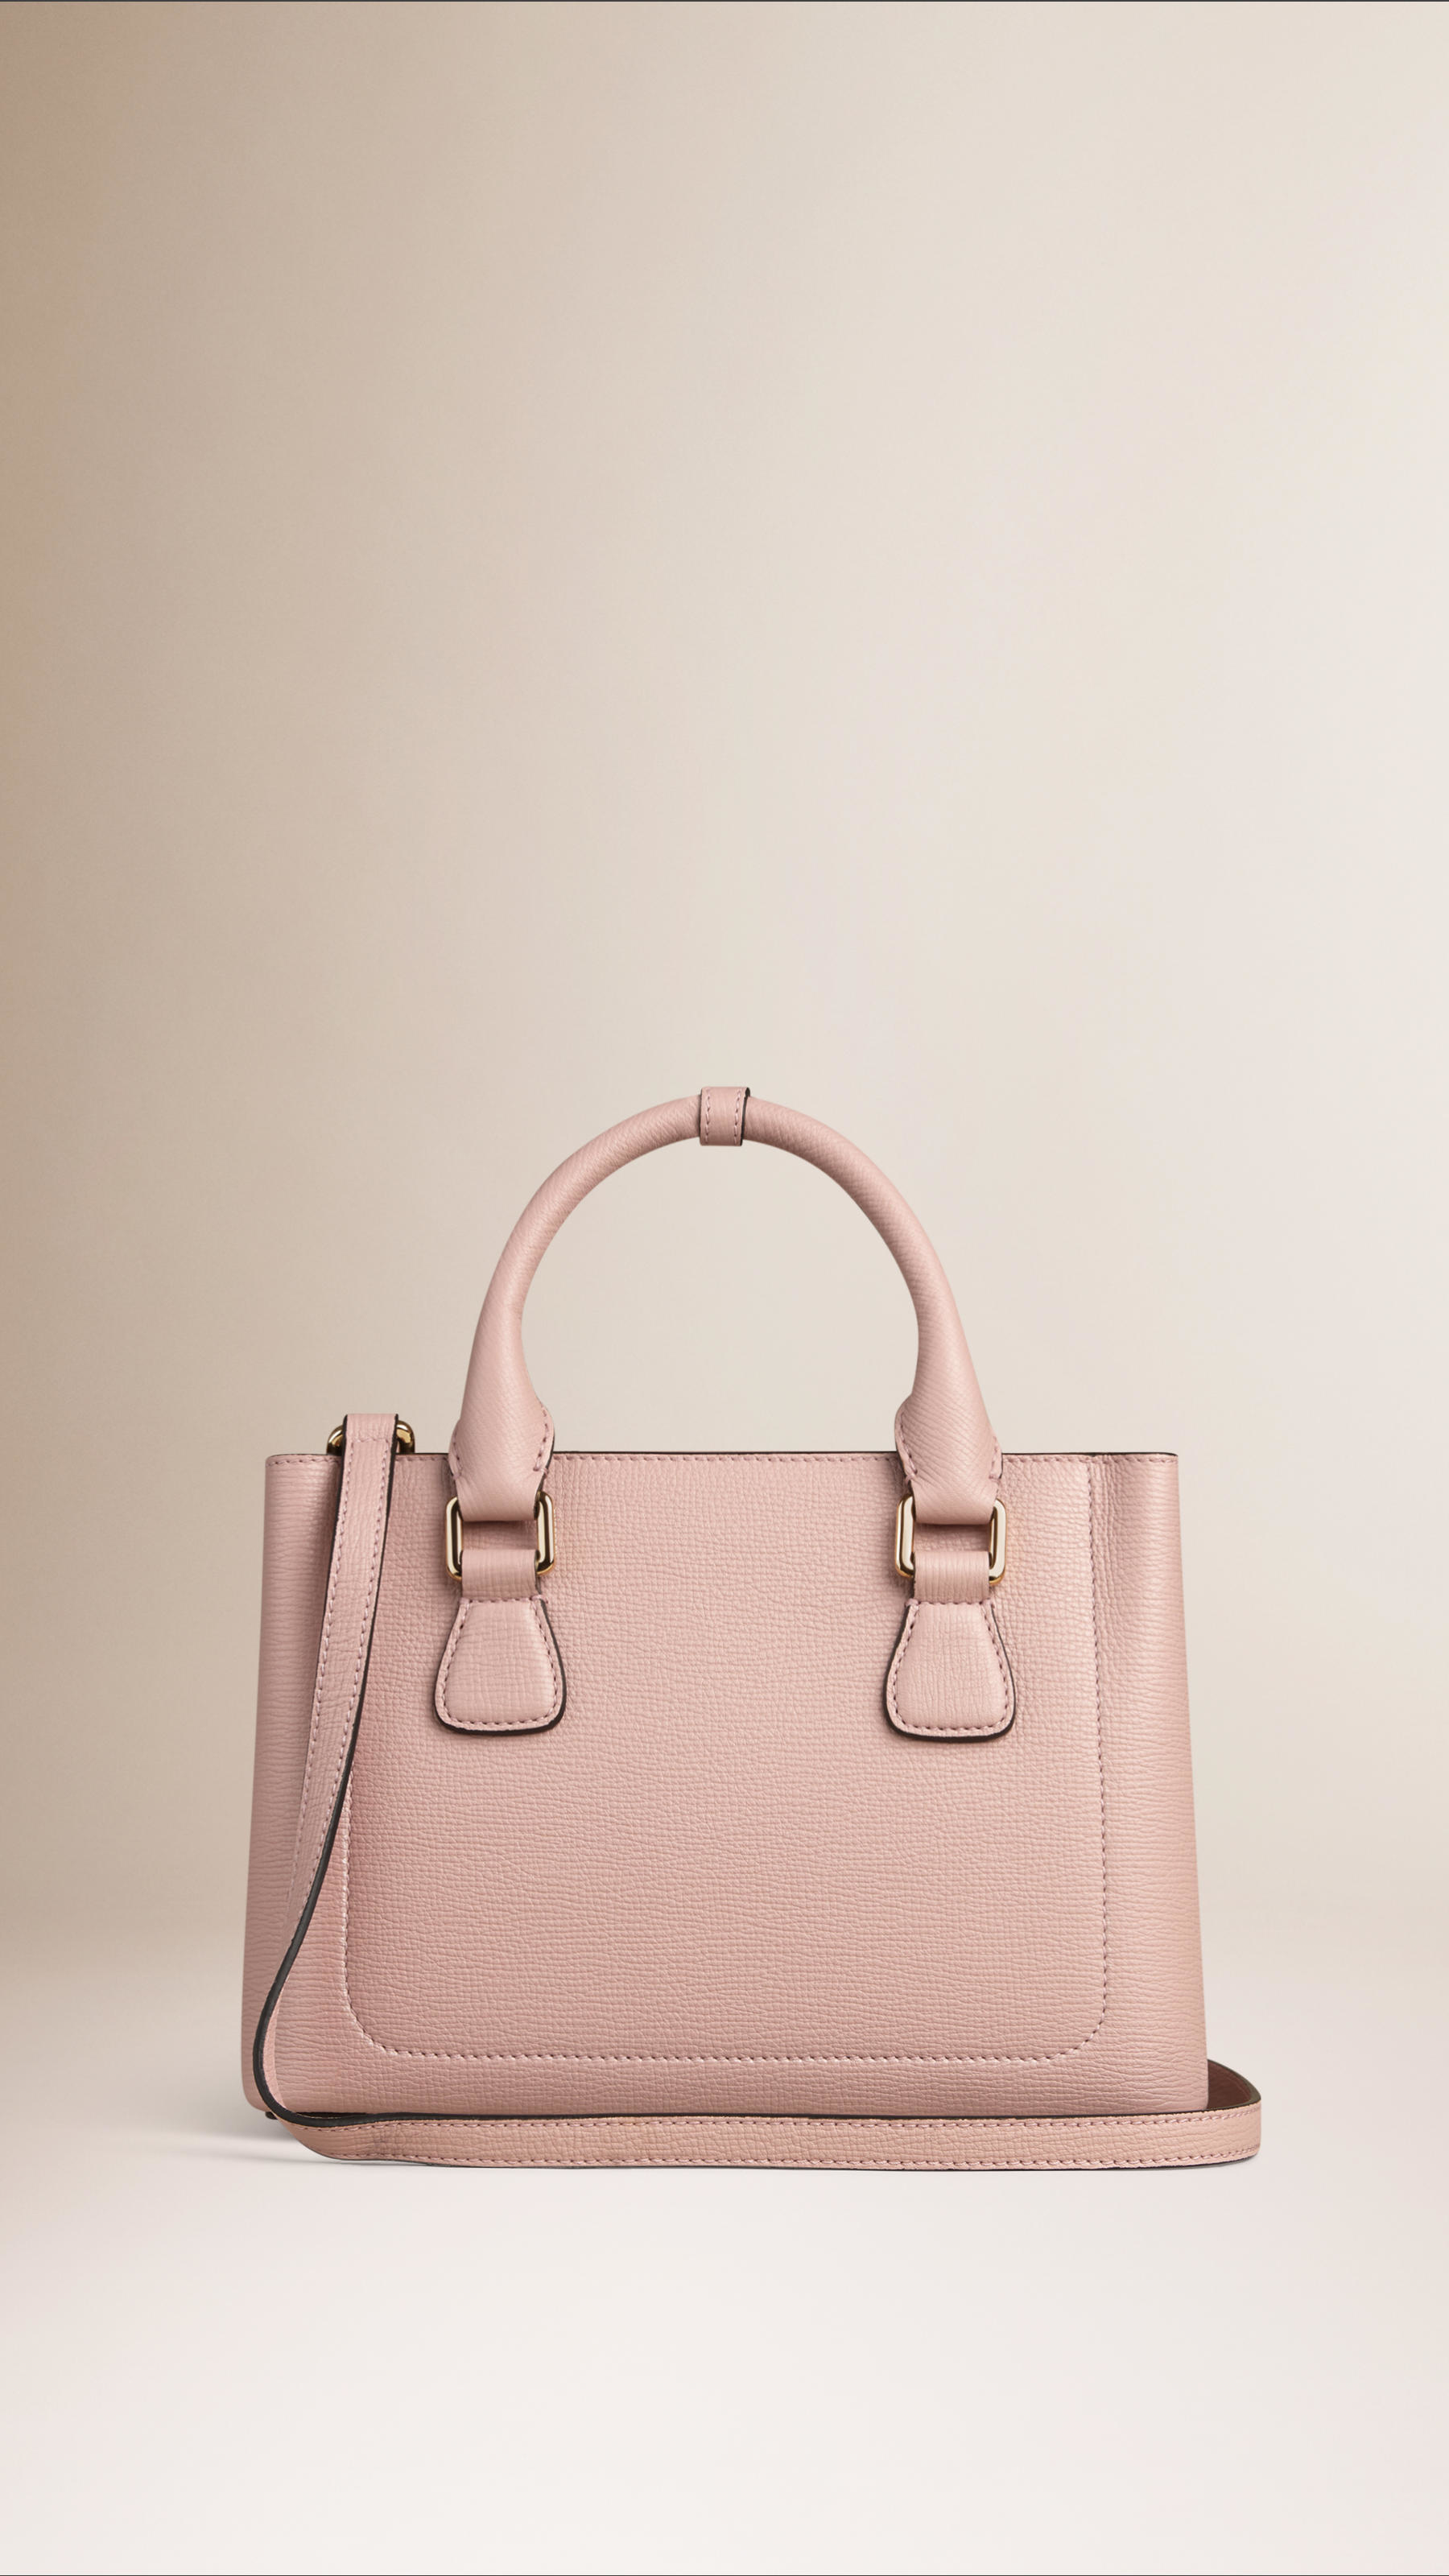 cfe732dd7585 Burberry The Small Saddle Bag In Grainy Bonded Leather Pale Orchid ...